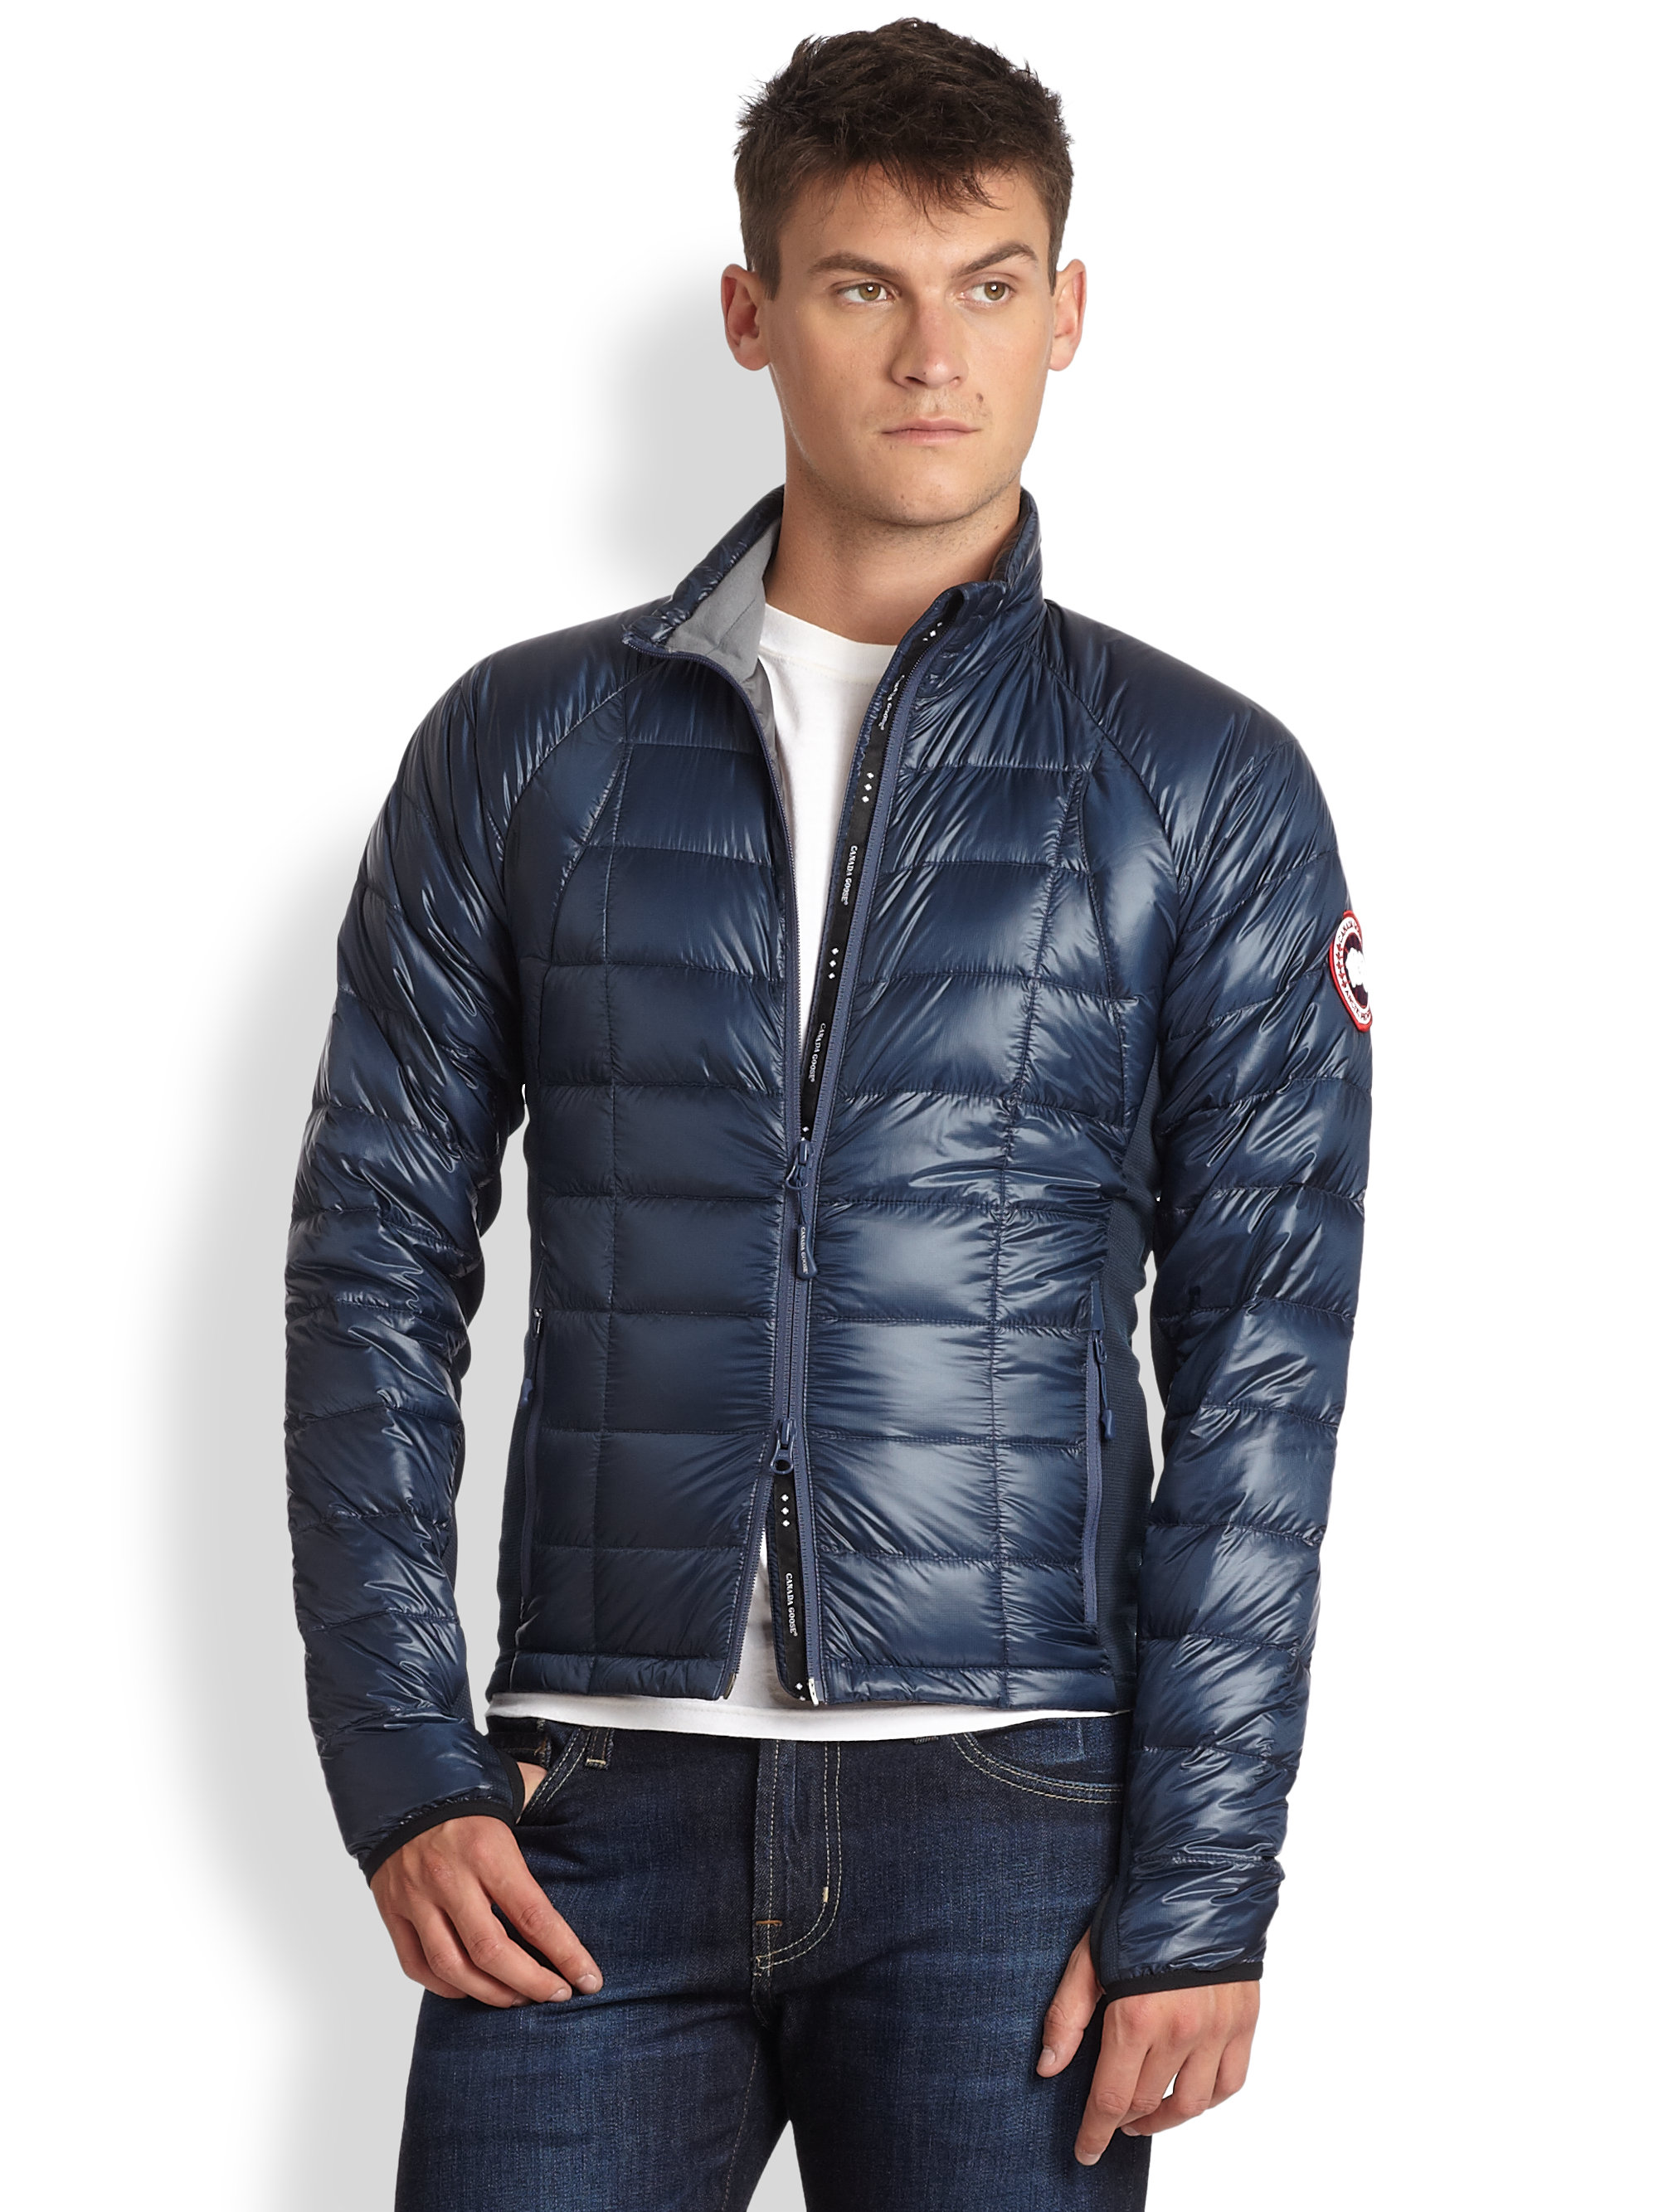 where can i get Canada Goose' jackets